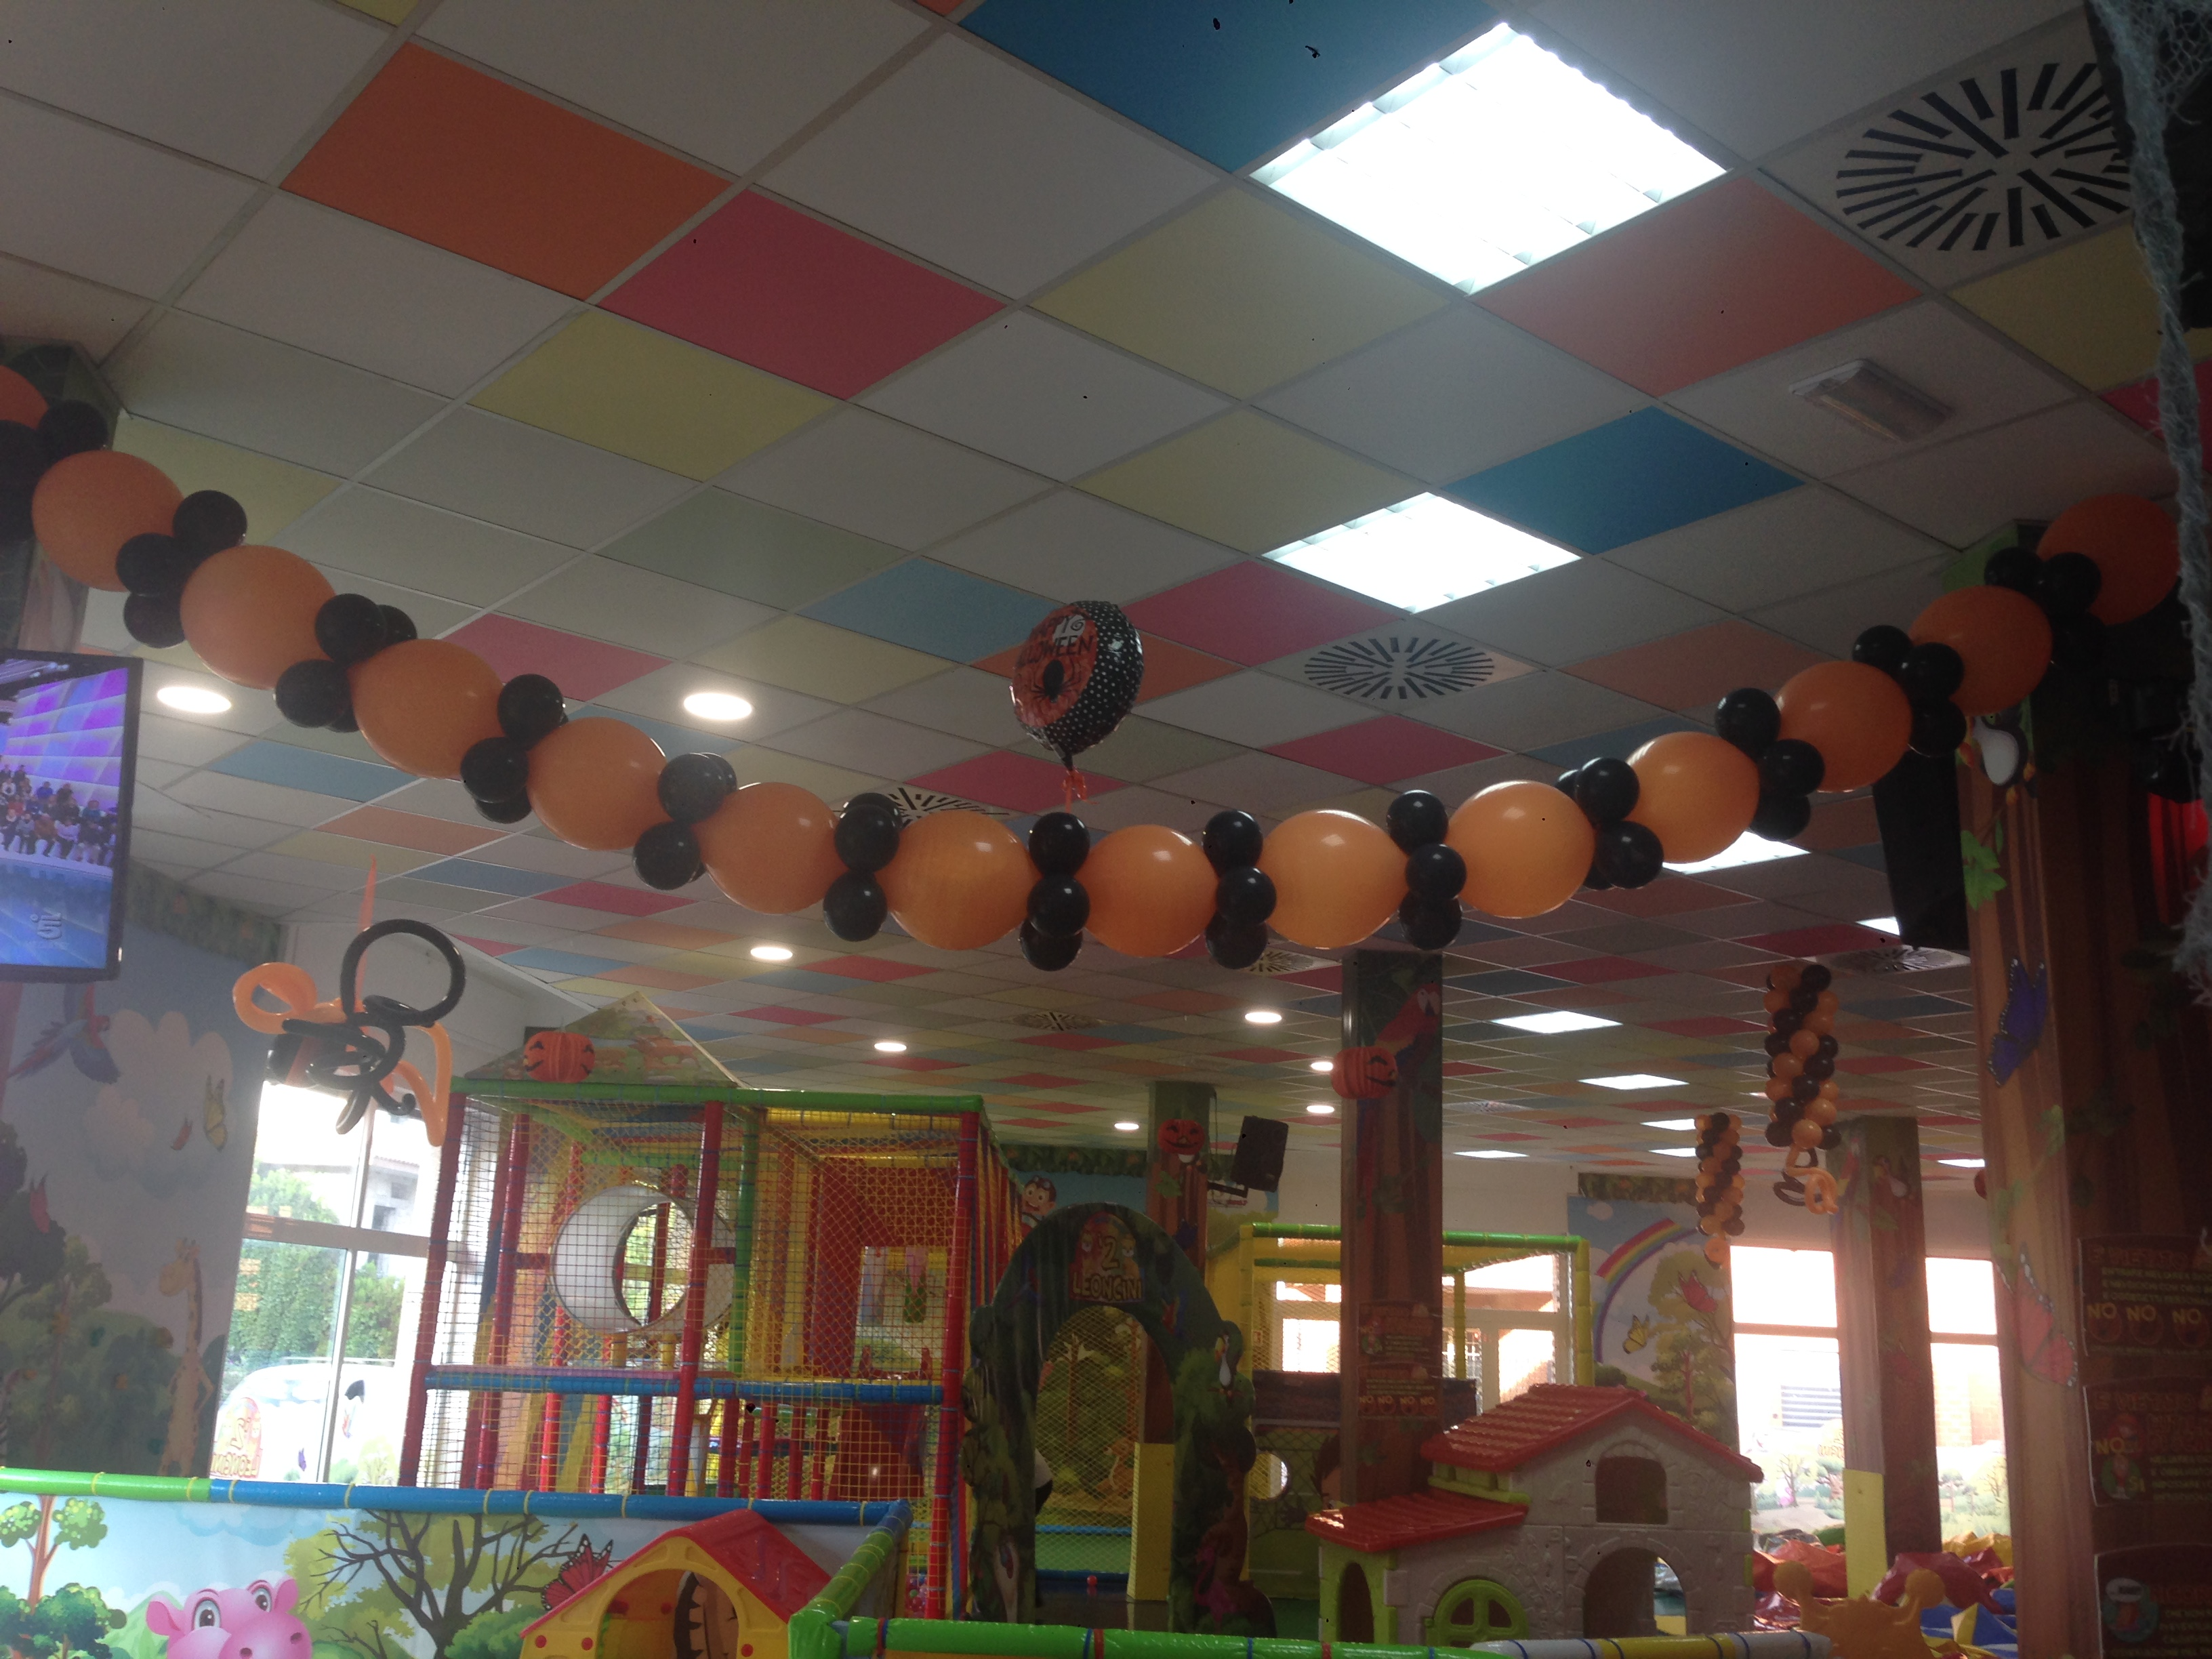 Arco soffitto tema Hallowen e person